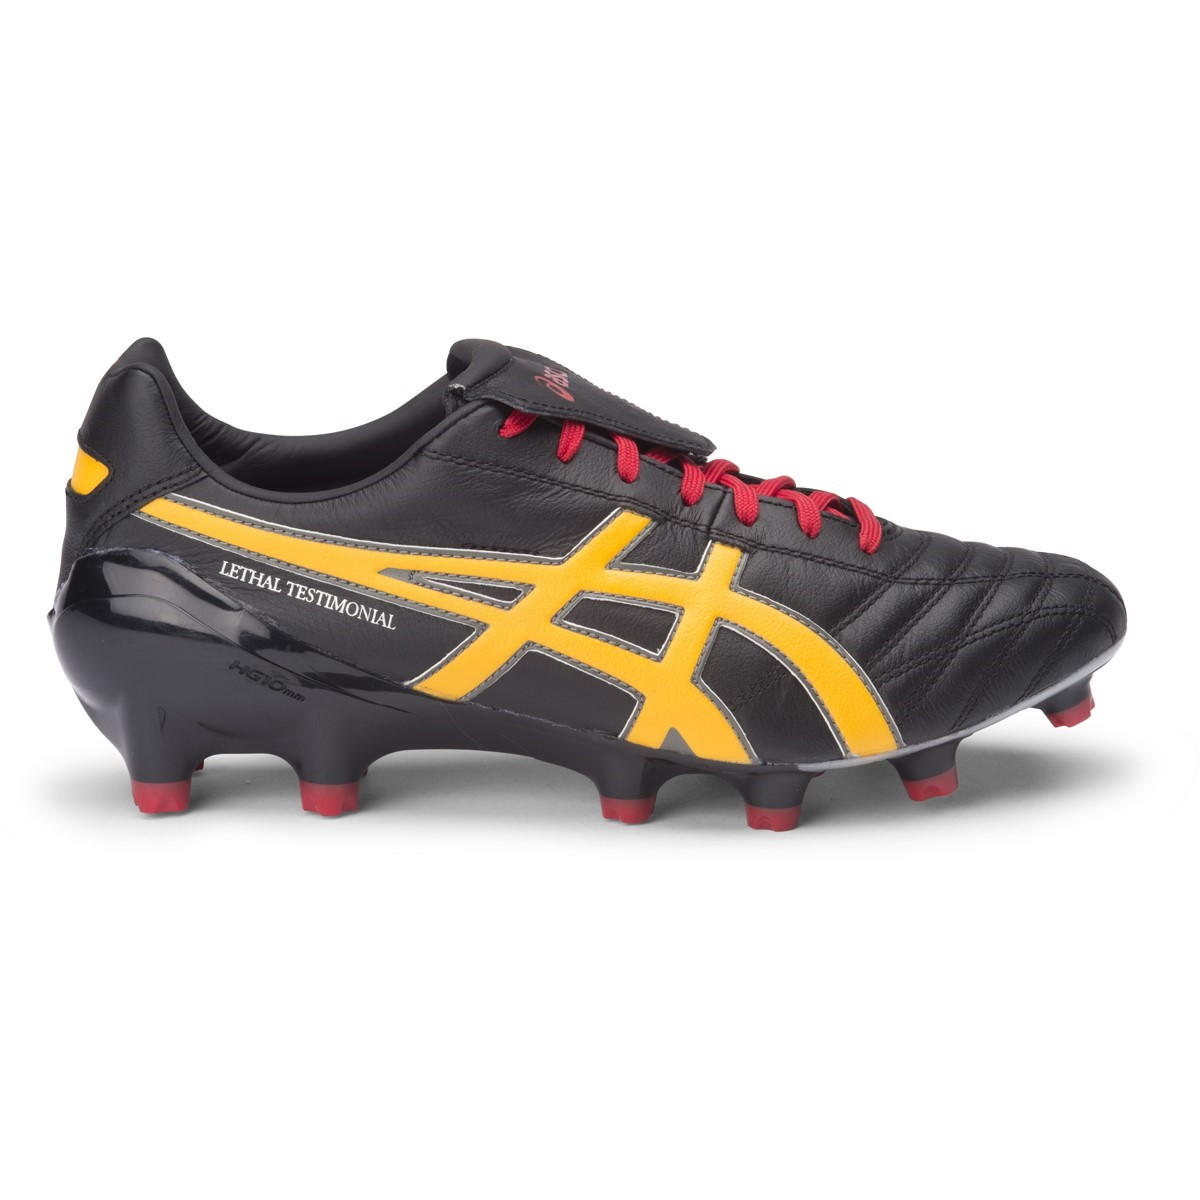 3bf5f181727b Asics Lethal Testimonial 4 IT - Mens Football Boots - Black Burnt Sun Red